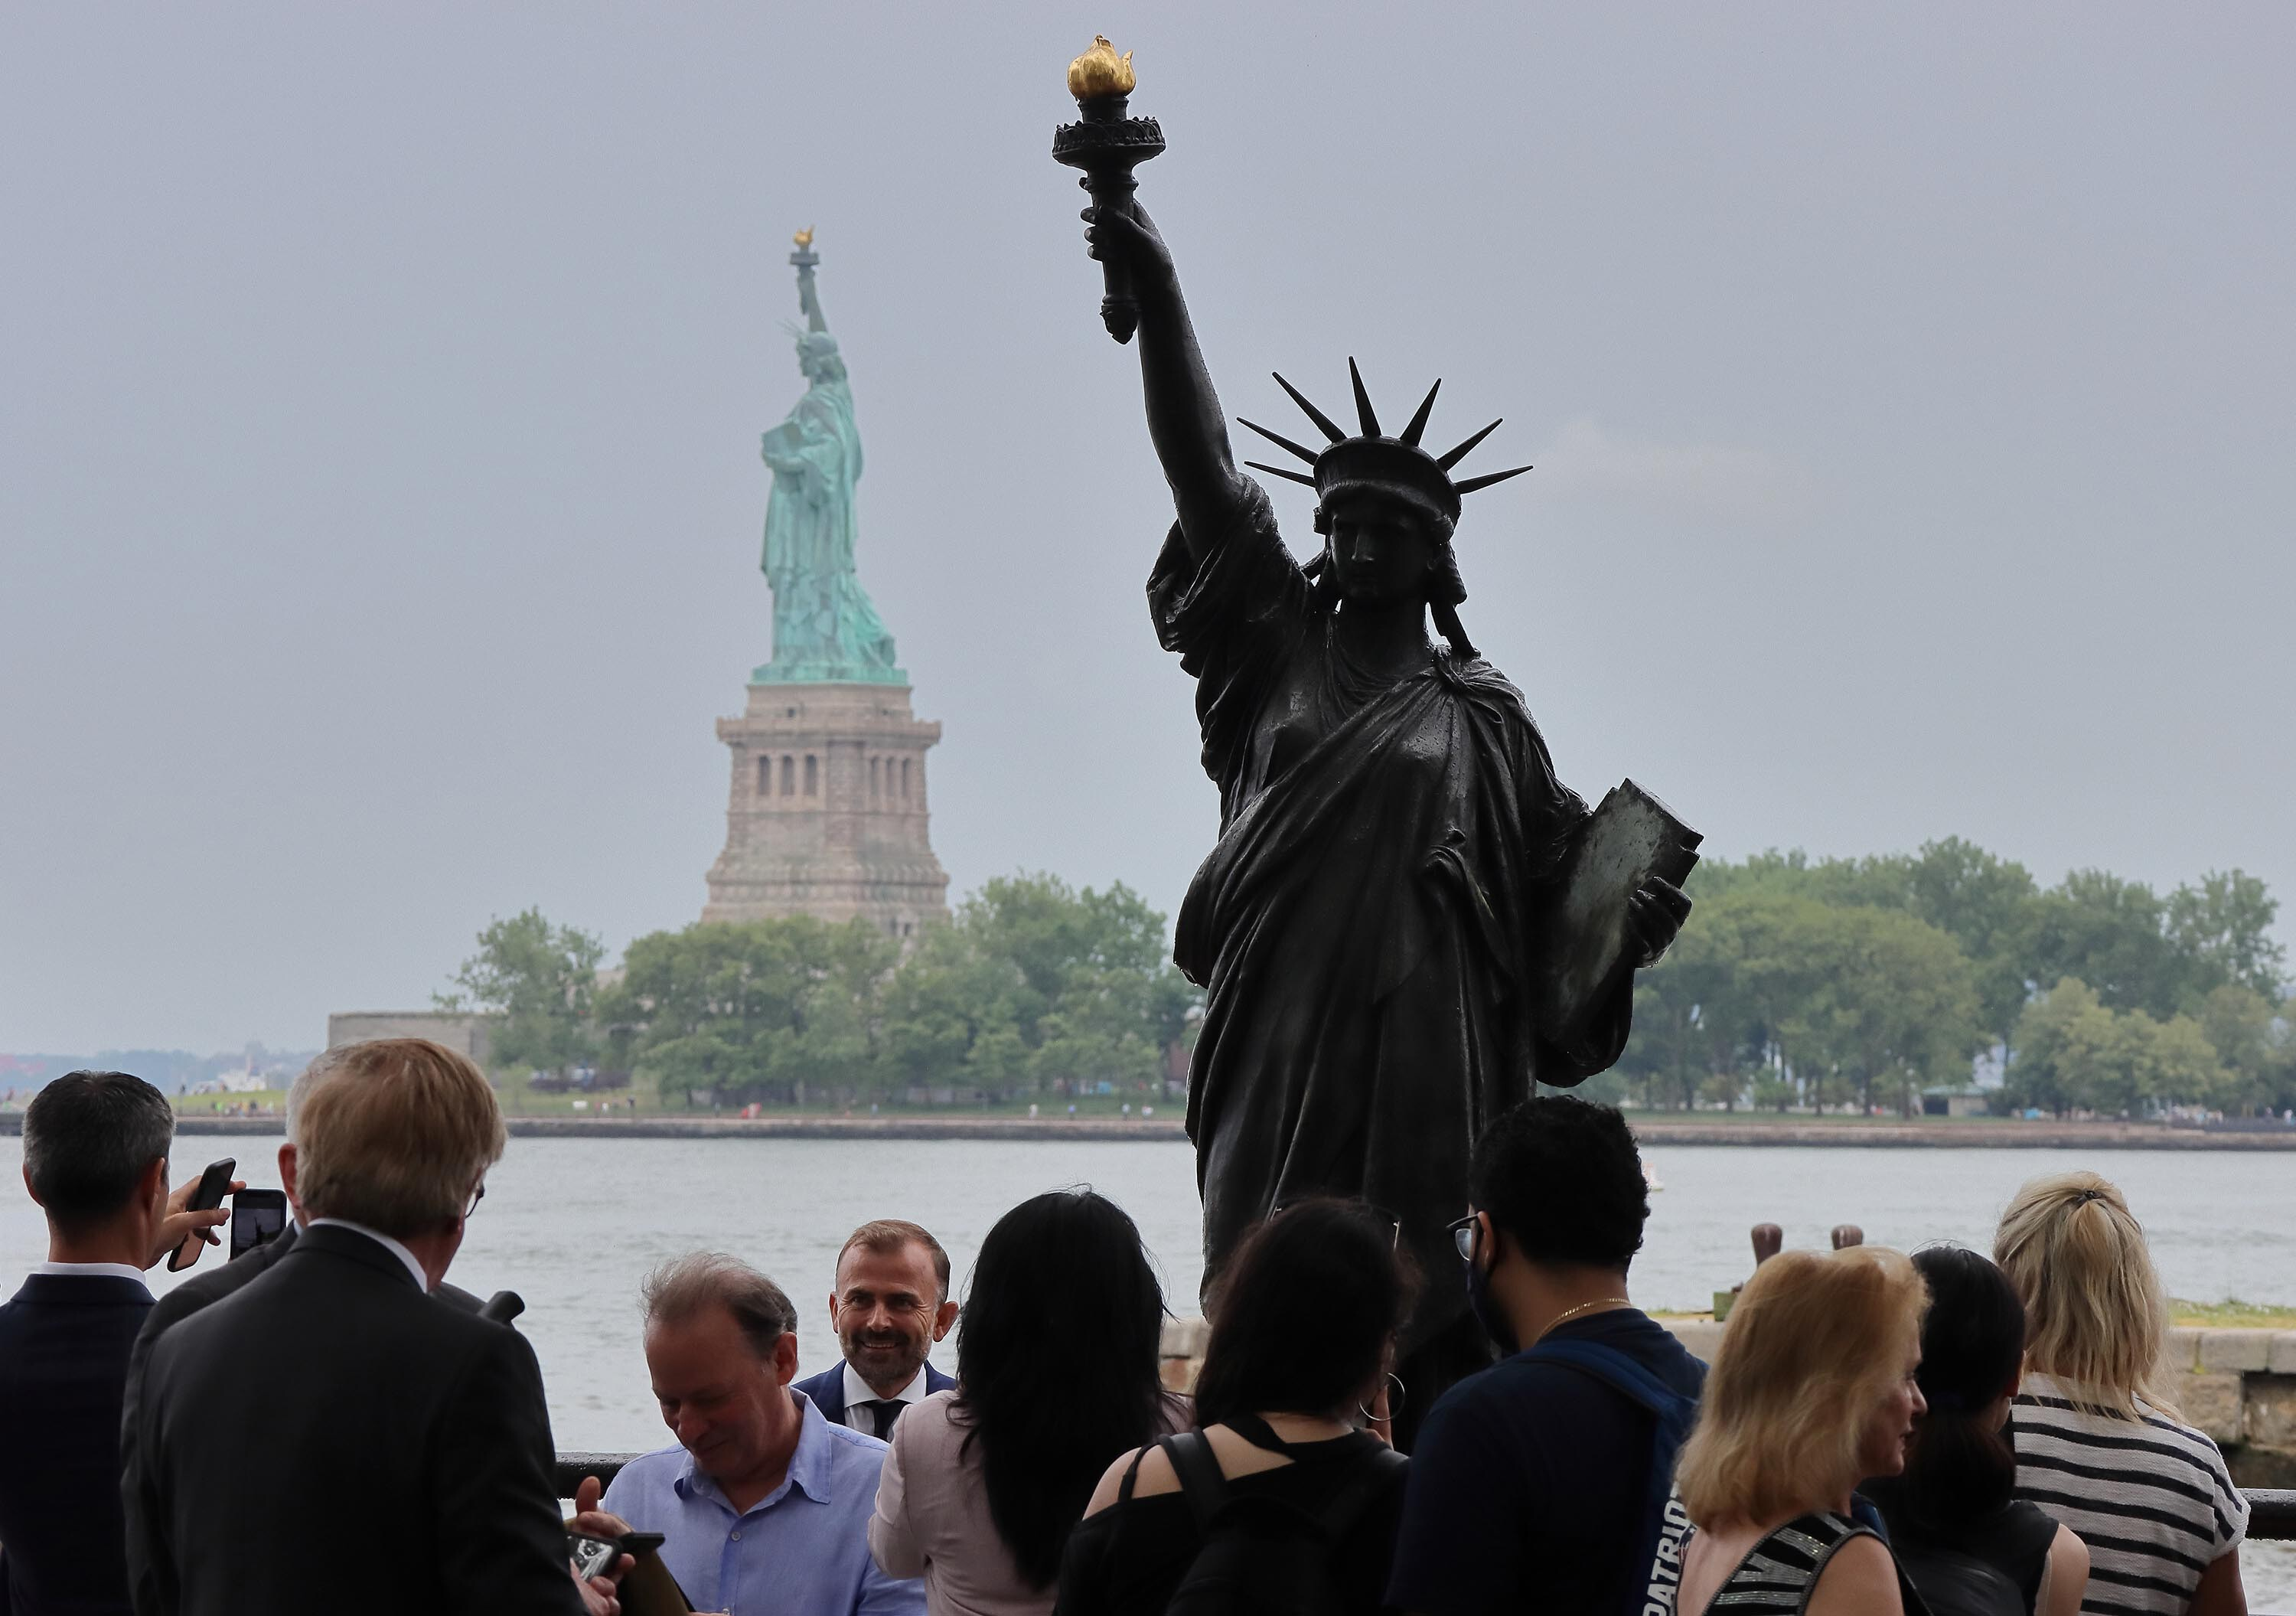 Statue of Liberty's 'little sister' takes up residence in Washington, DC